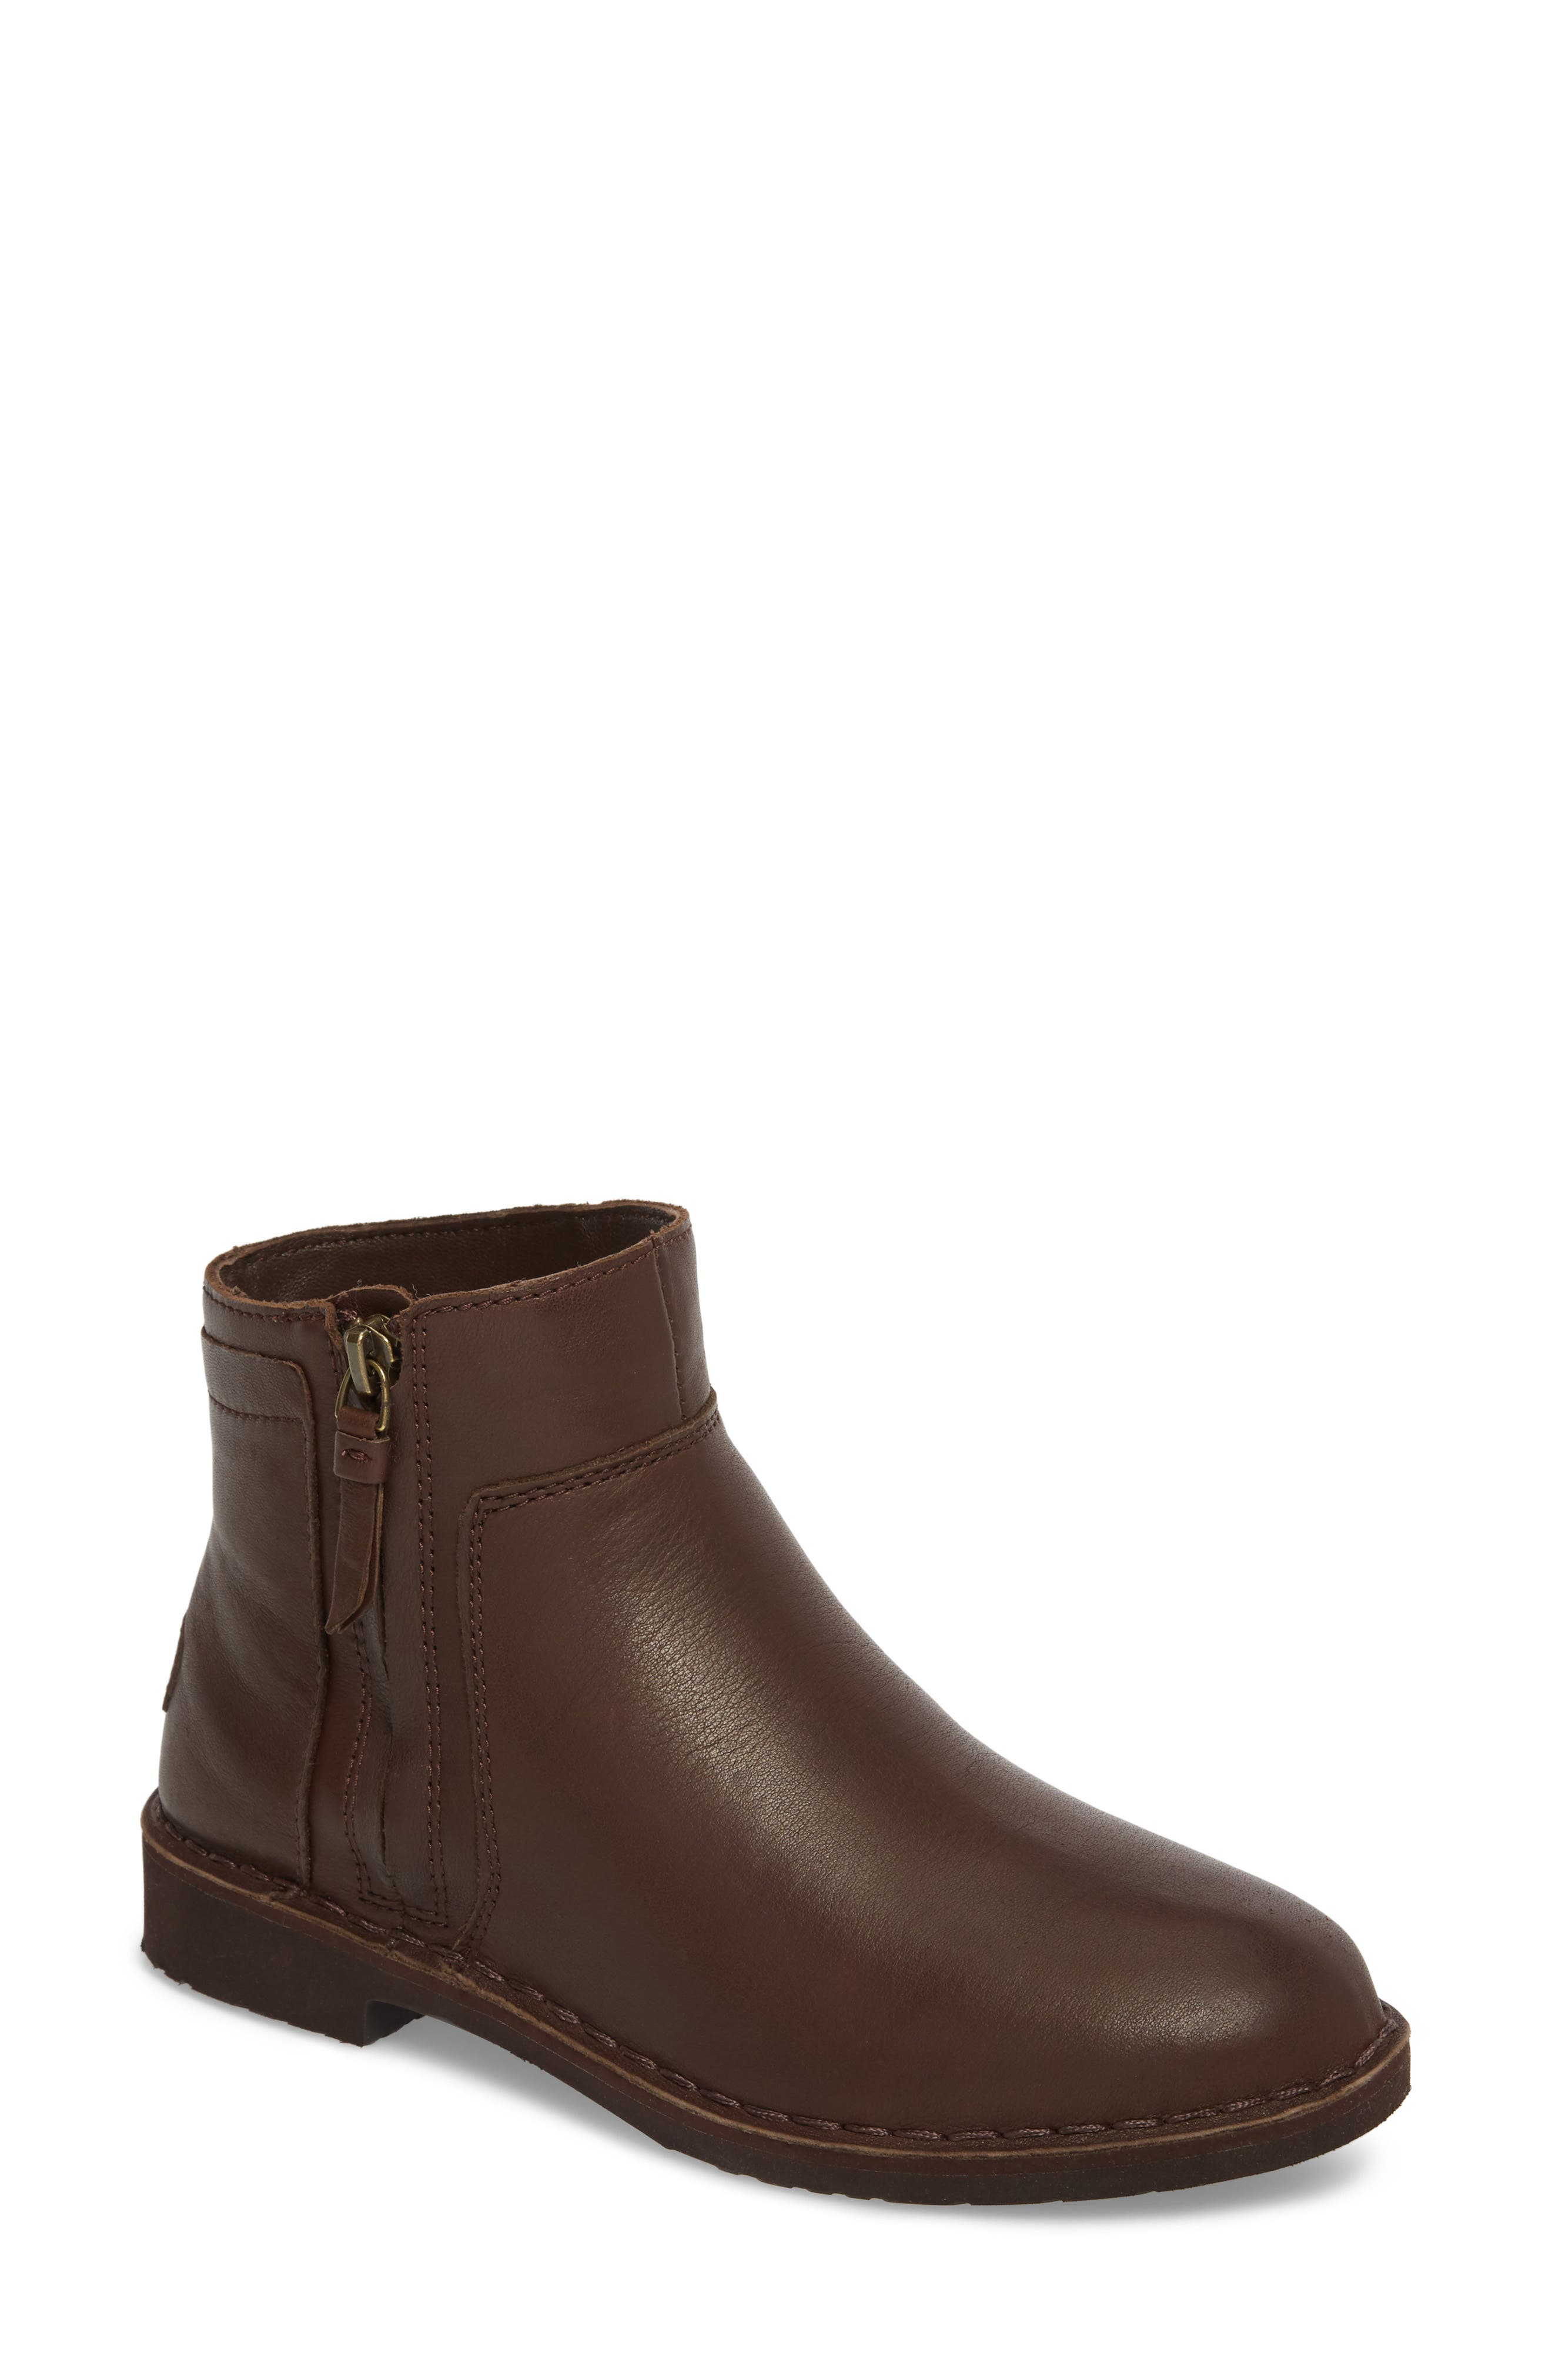 Rea Bootie,                         Main,                         color, Stout Leather